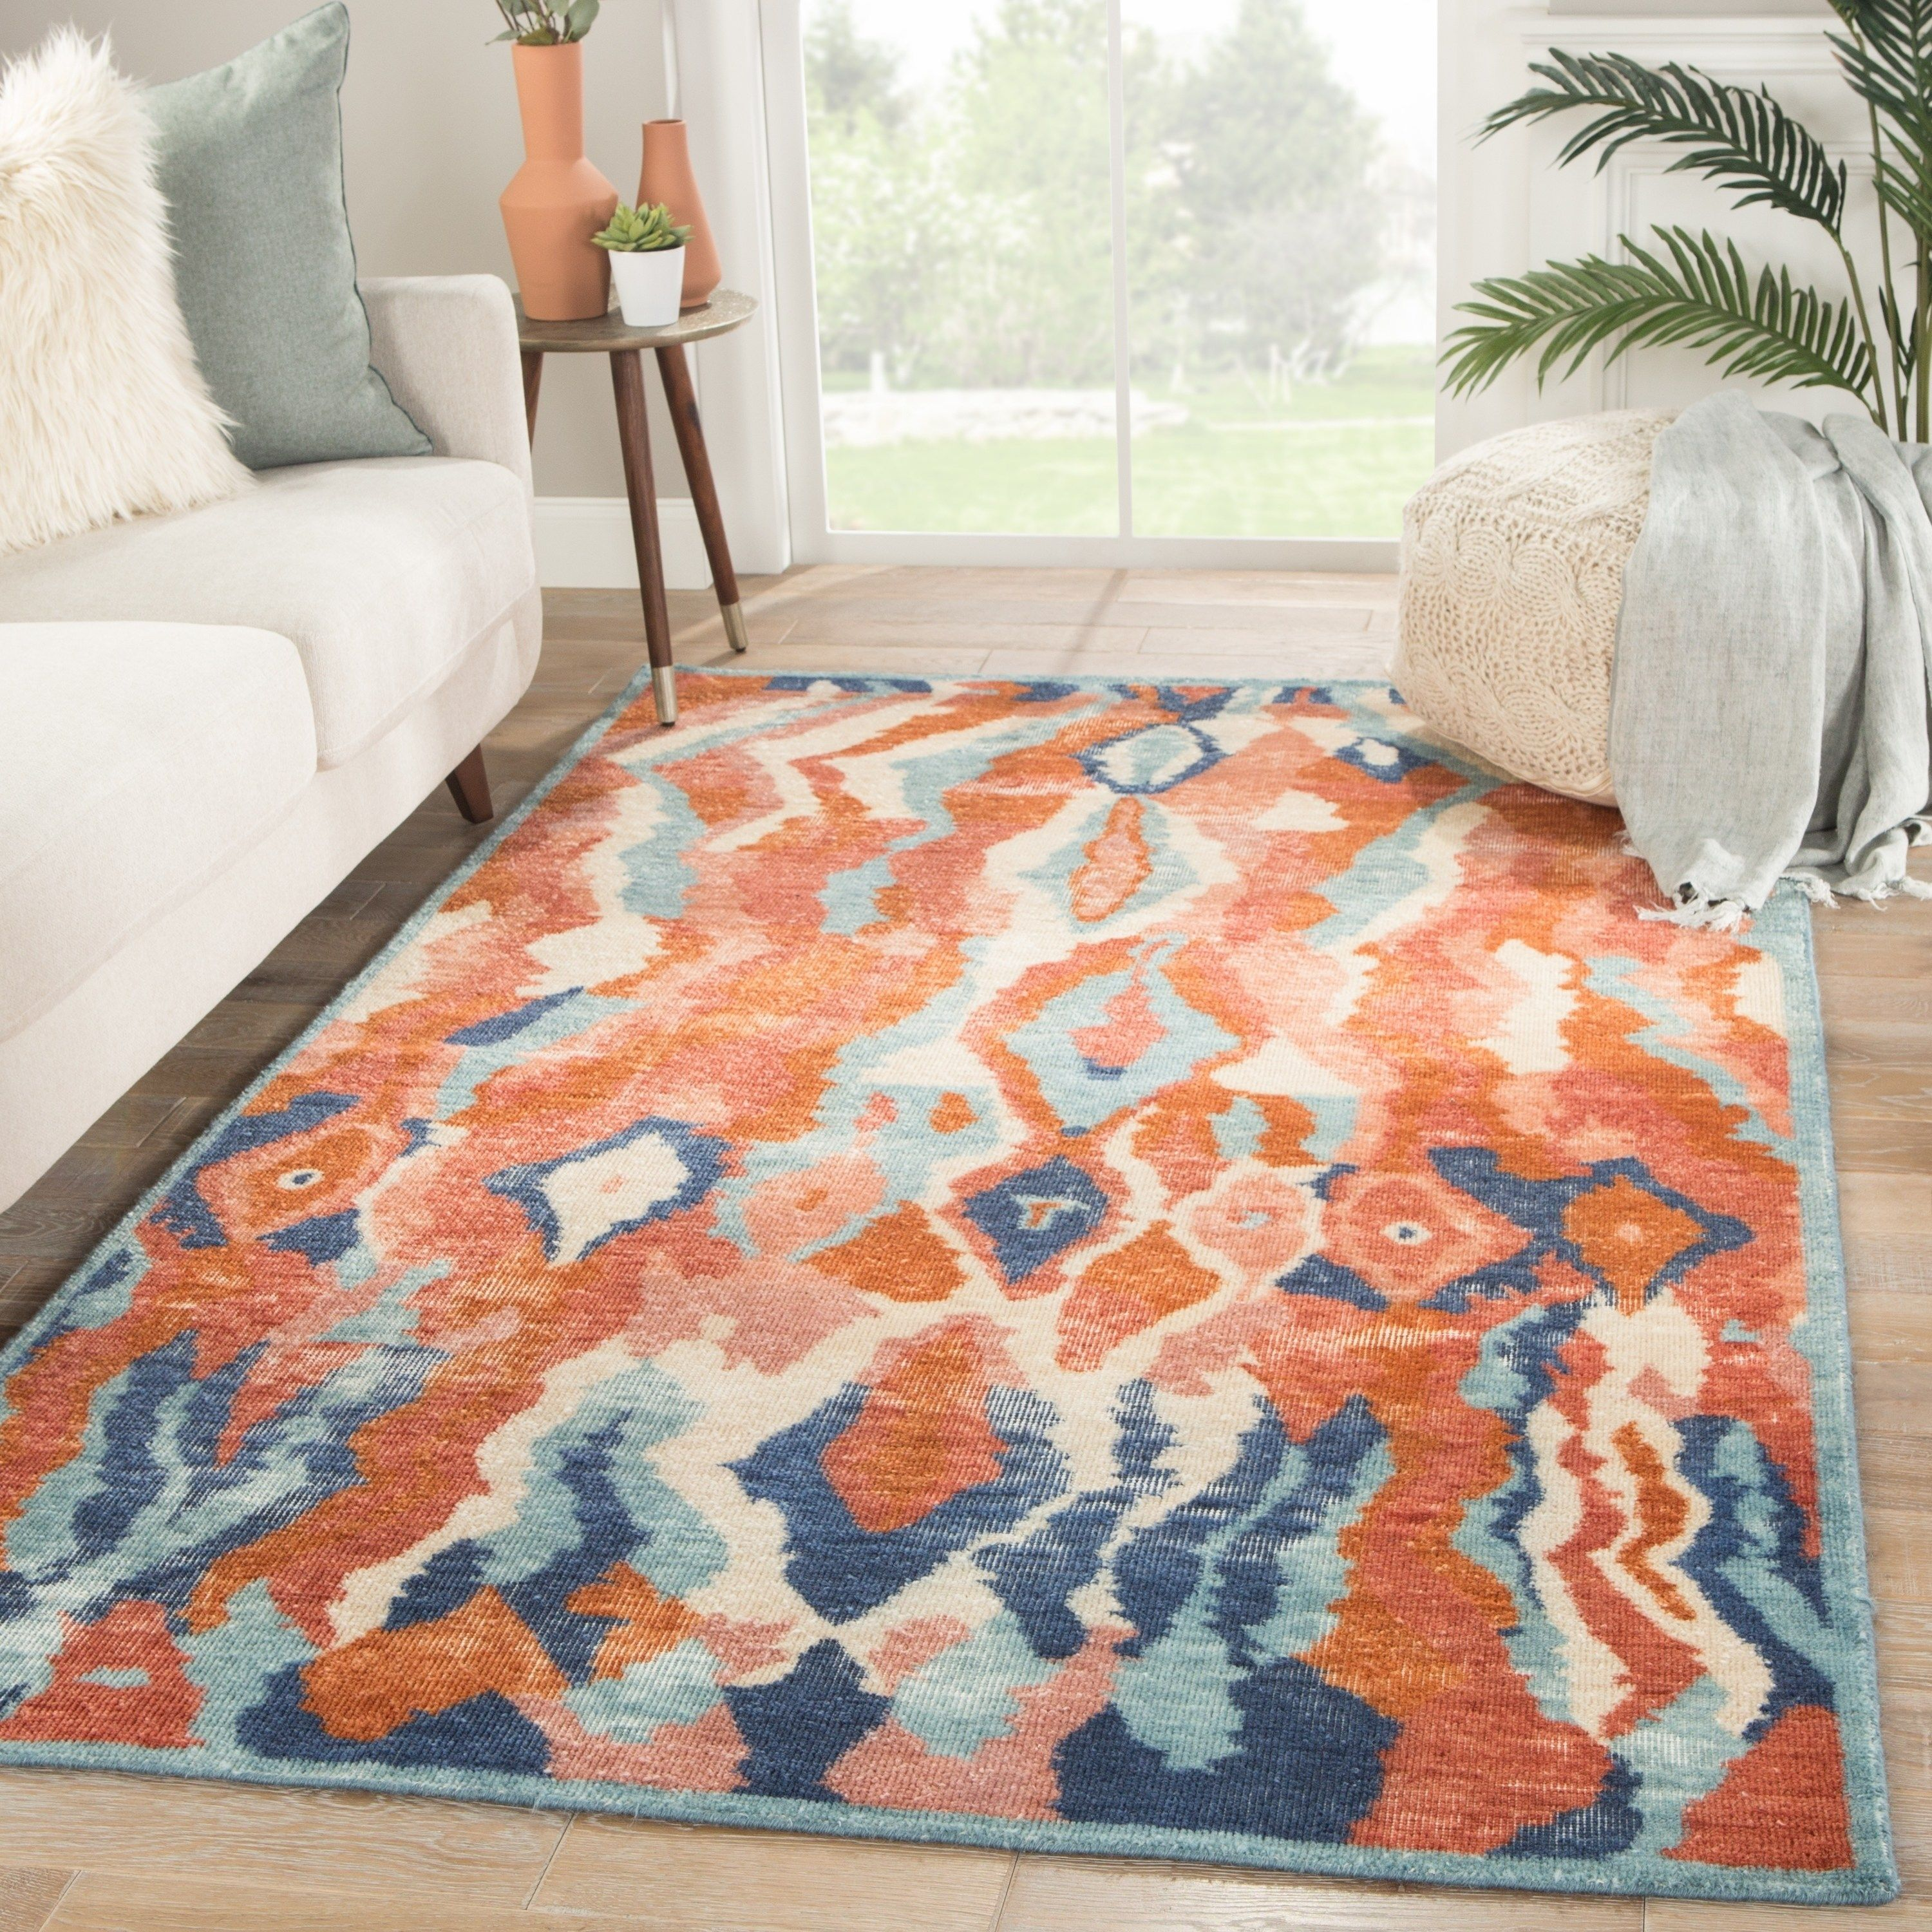 Online Shopping Bedding Furniture Electronics Jewelry Clothing More Blue Area Rugs Colorful Rugs Area Rugs